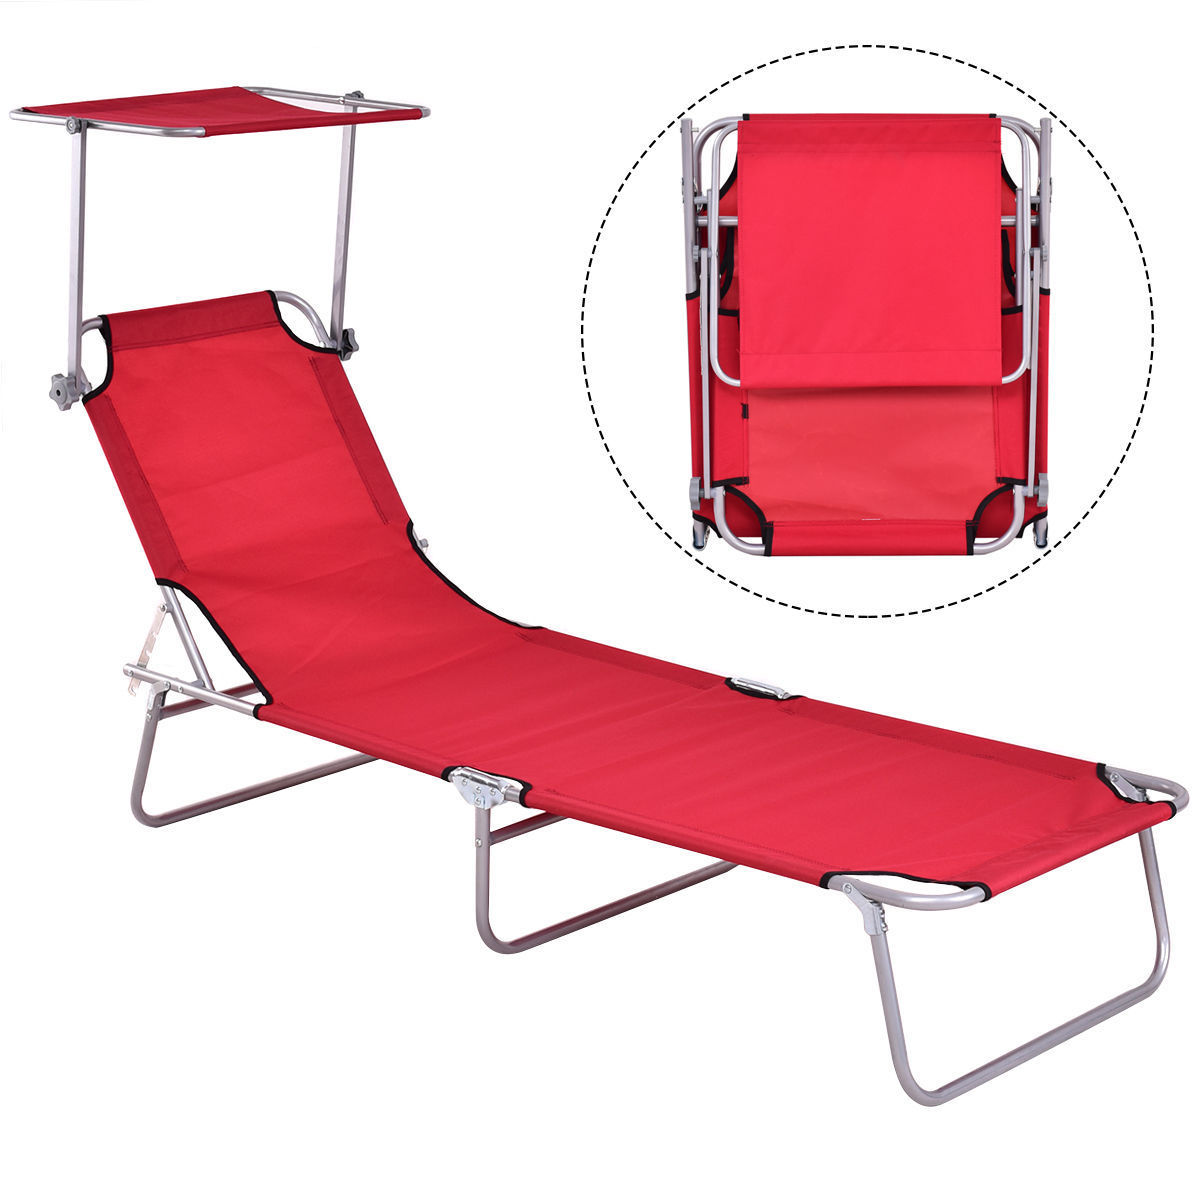 Gymax Foldable Sun Lounge Bed Chair Beach Recliner Seat Back Red